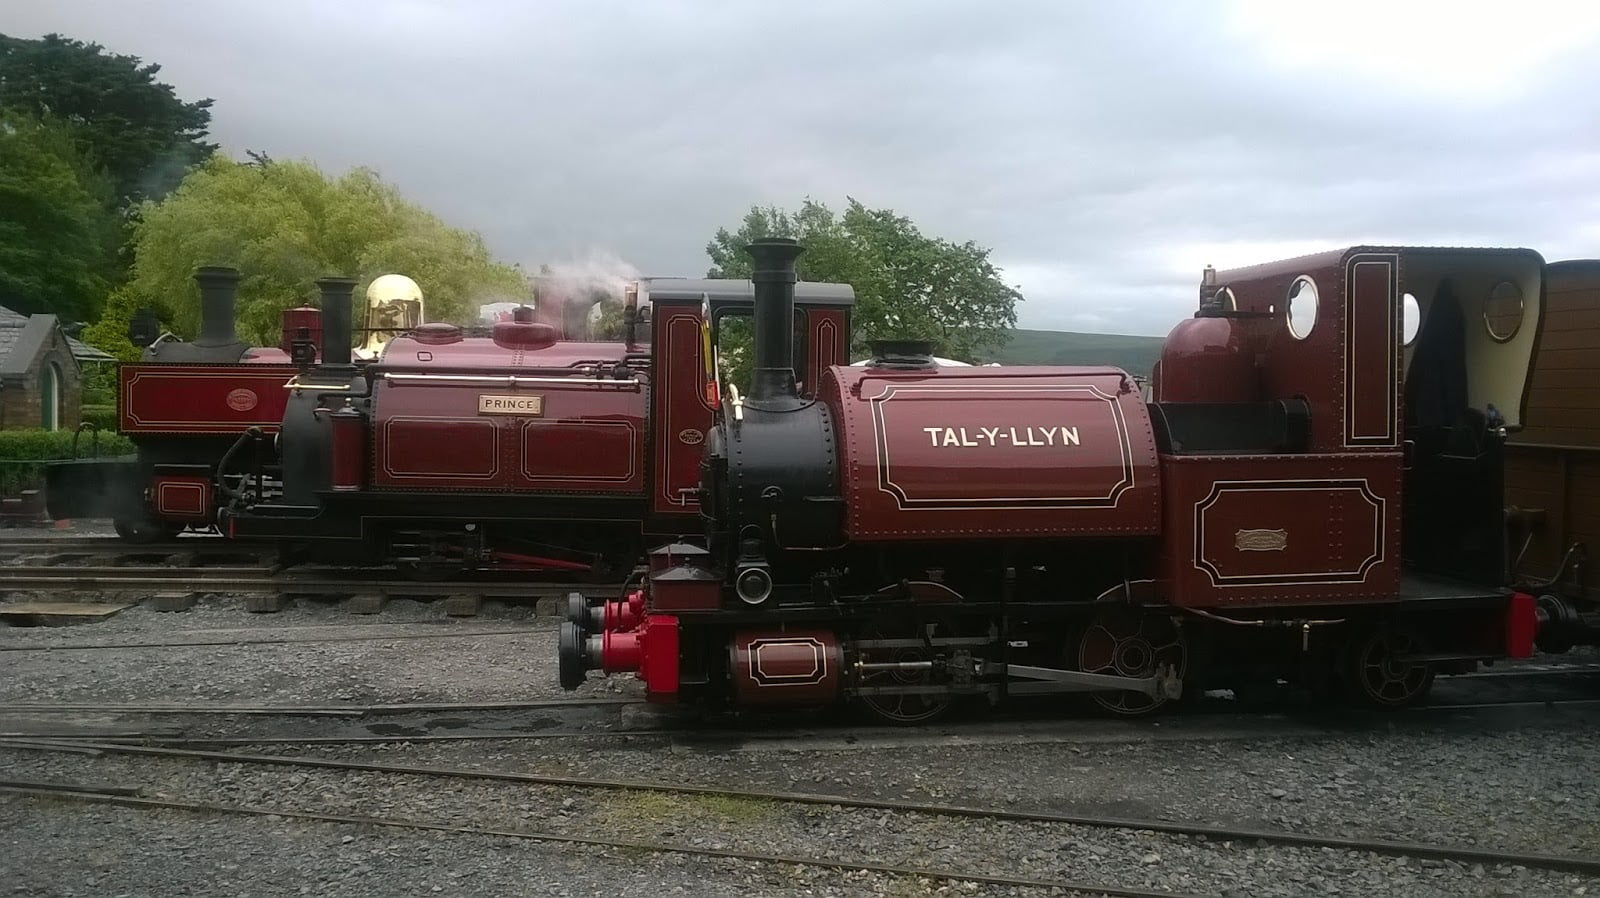 Russell, Prince and Talyllyn all lined up at Tywyn Wharf